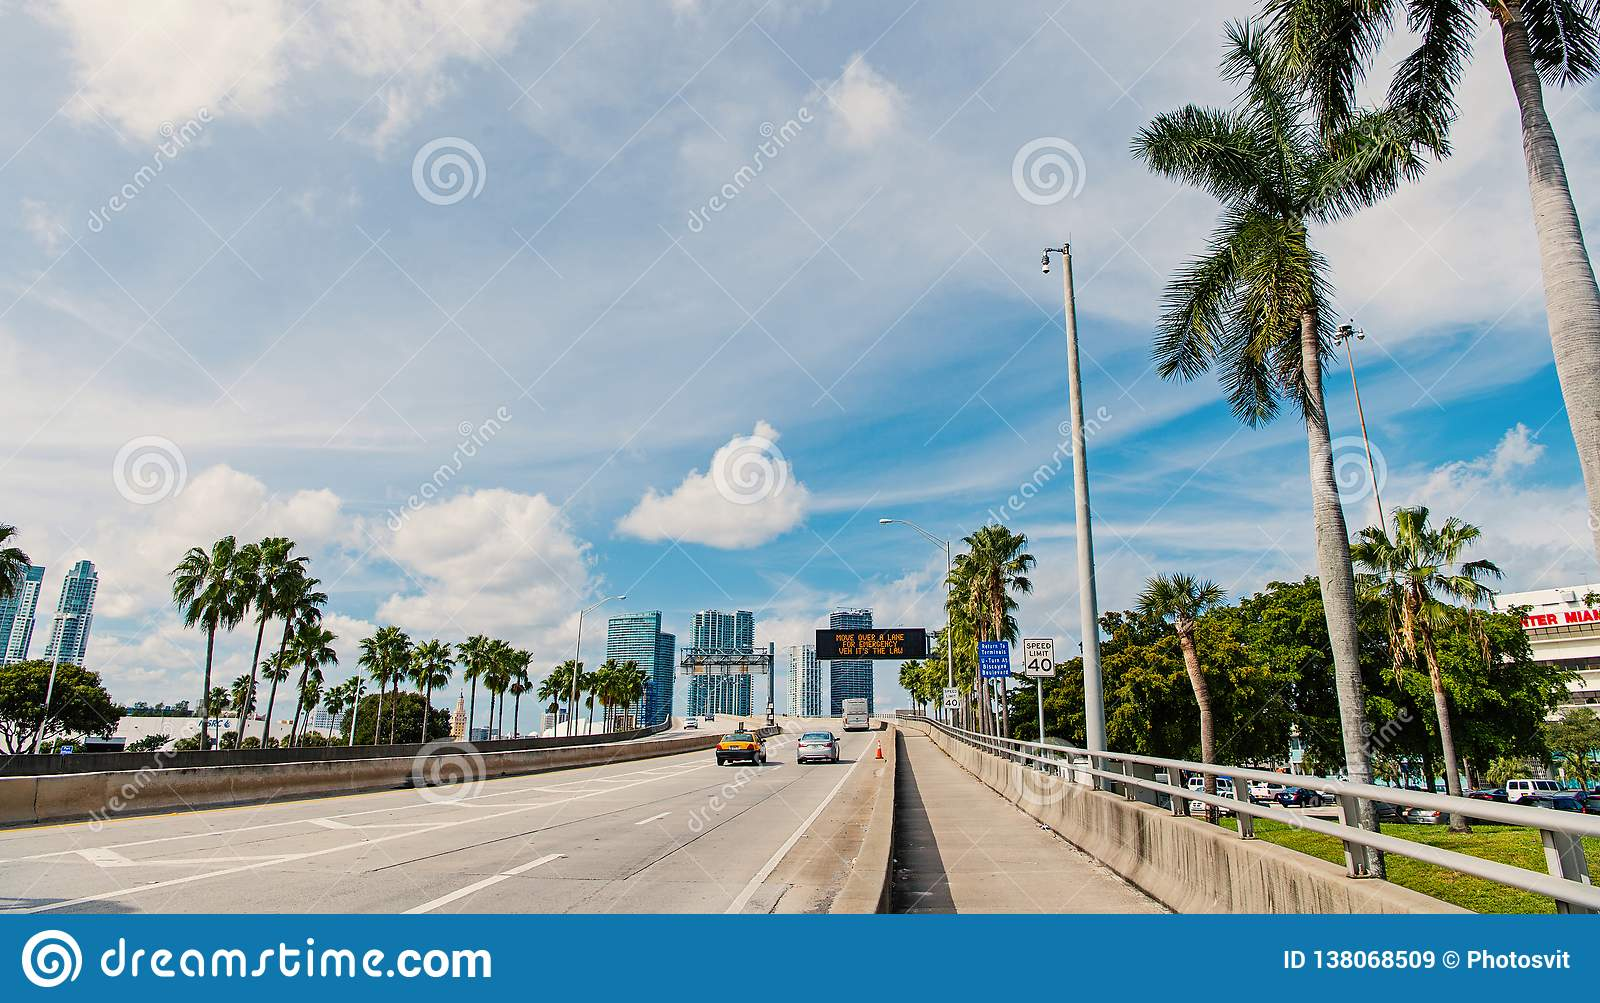 Highway or roadway with cars and skyline of miami, usa. Road with traffic signs for transport vehicles and palm trees on